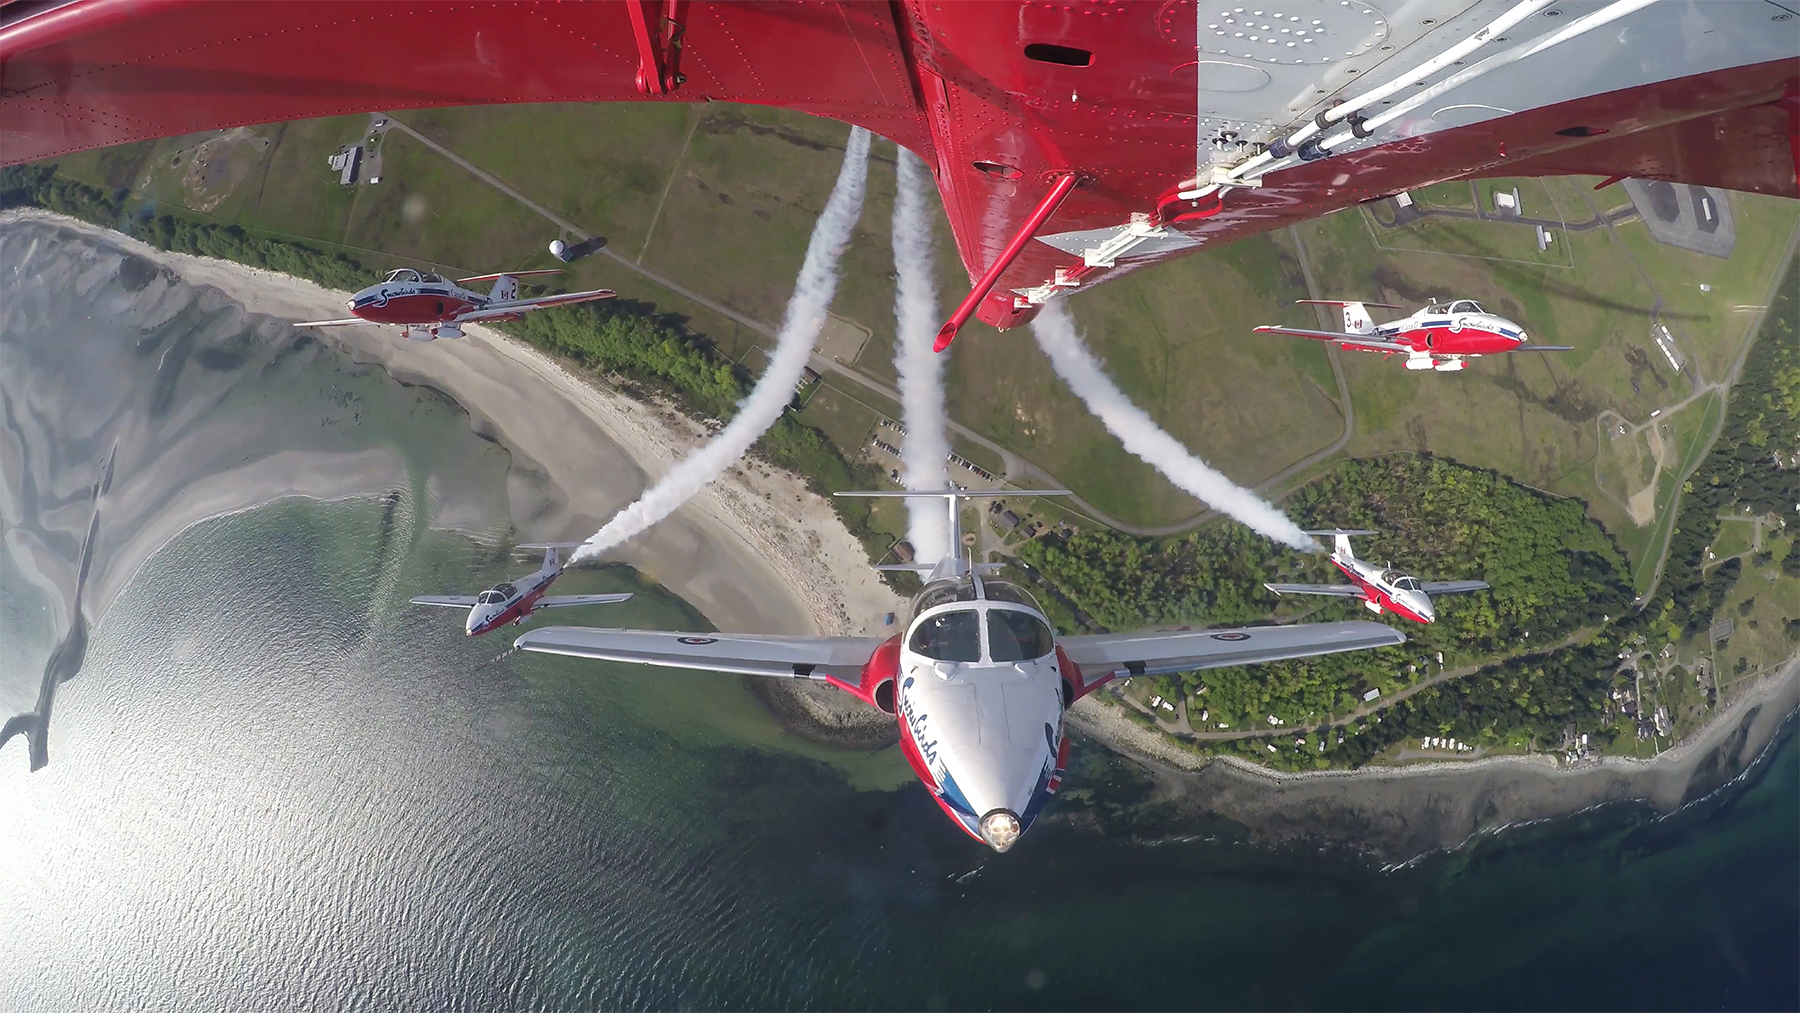 In a vertical climb over the shoreline of British Columbia in April 2015, the Snowbirds air demonstration team is filmed by the TankCam, mounted on the belly of the Team Lead's aircraft, the tail of which can be seen here across the top of the photo. PHOTO: Snowbirds TankCam